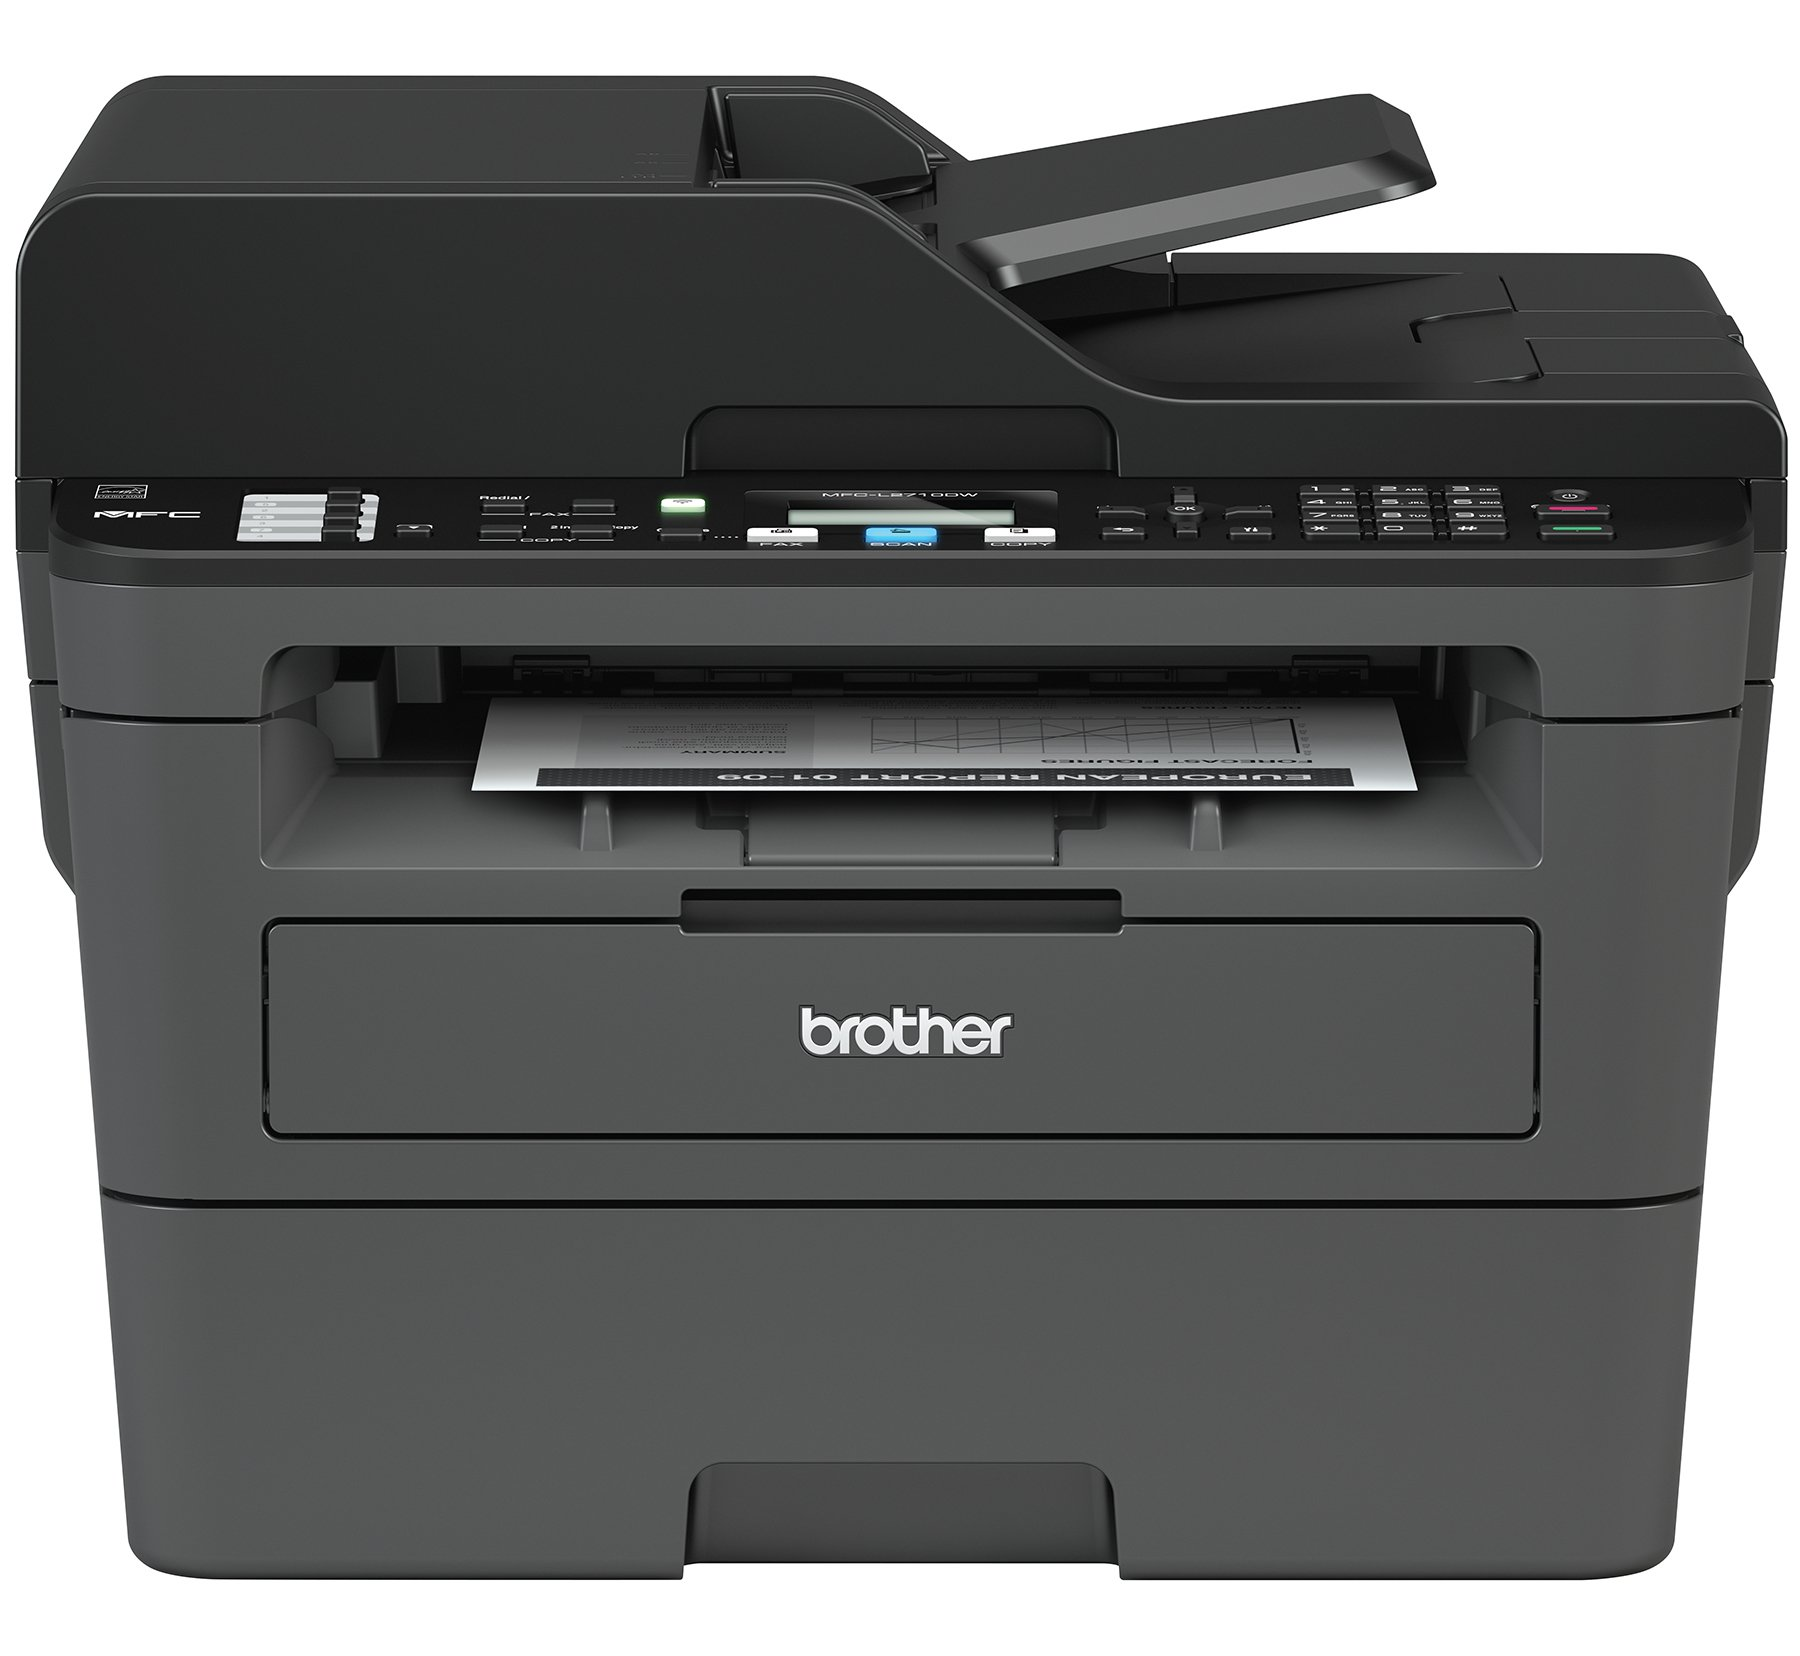 Brother Compact Monochrome Laser All-in-One Multifunction Printer, MFCL2710DW, Duplex Two-sided Printing, Wireless Printing, USB Interface, Amazon Dash Replenishment Enabled by Brother